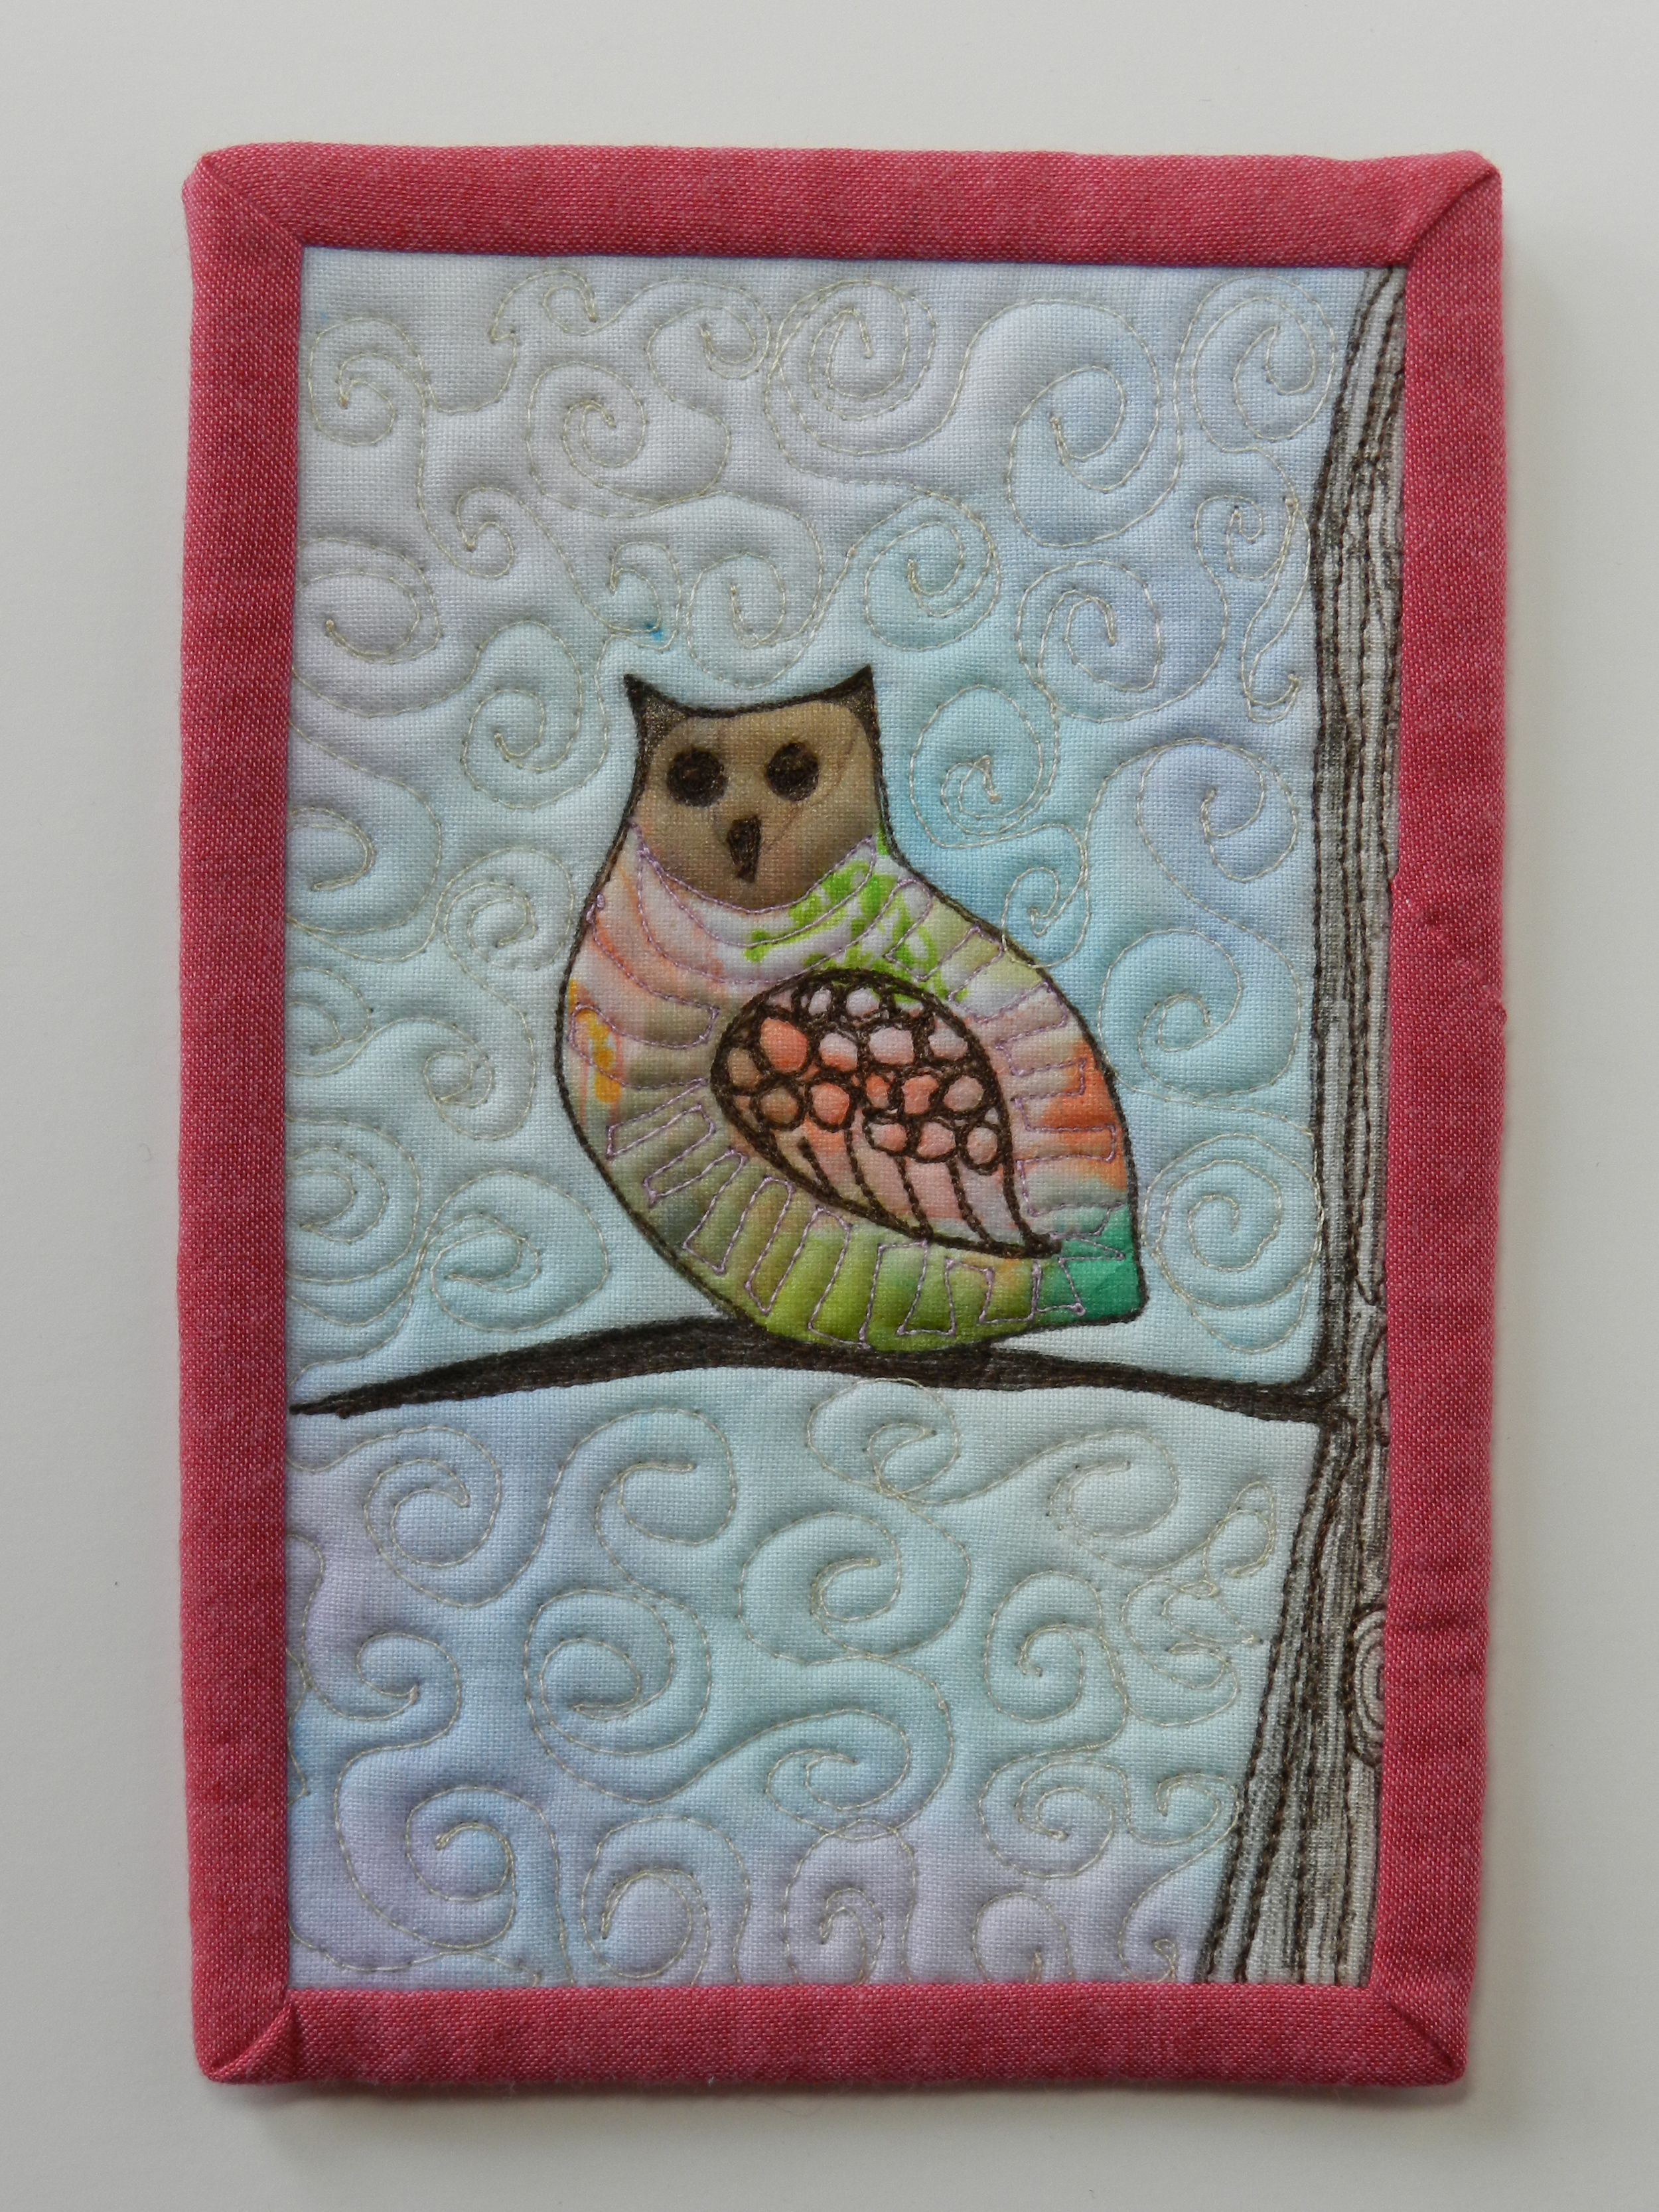 Watercolor transfer owl 1 on fabric postcard (2)